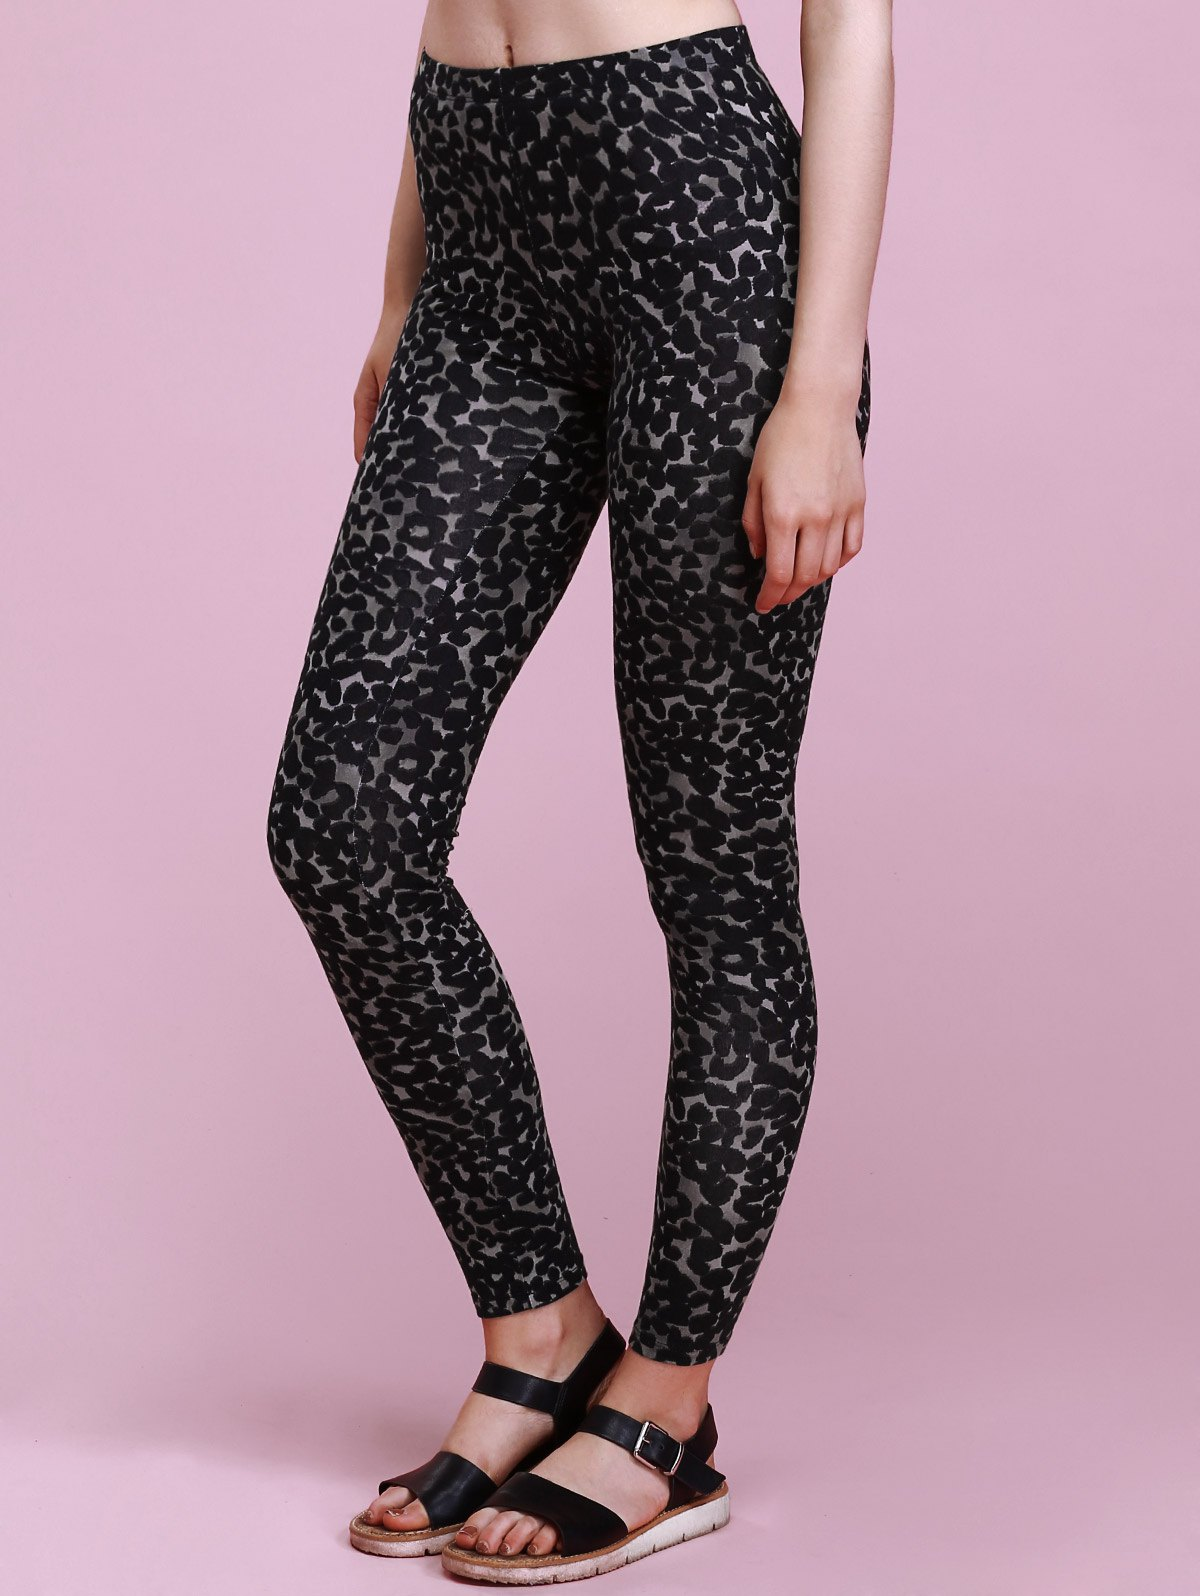 Trendy High-Waisted Skinny Slimming Stretchy Leopard Print Women's Pants leopard print skinny scarf